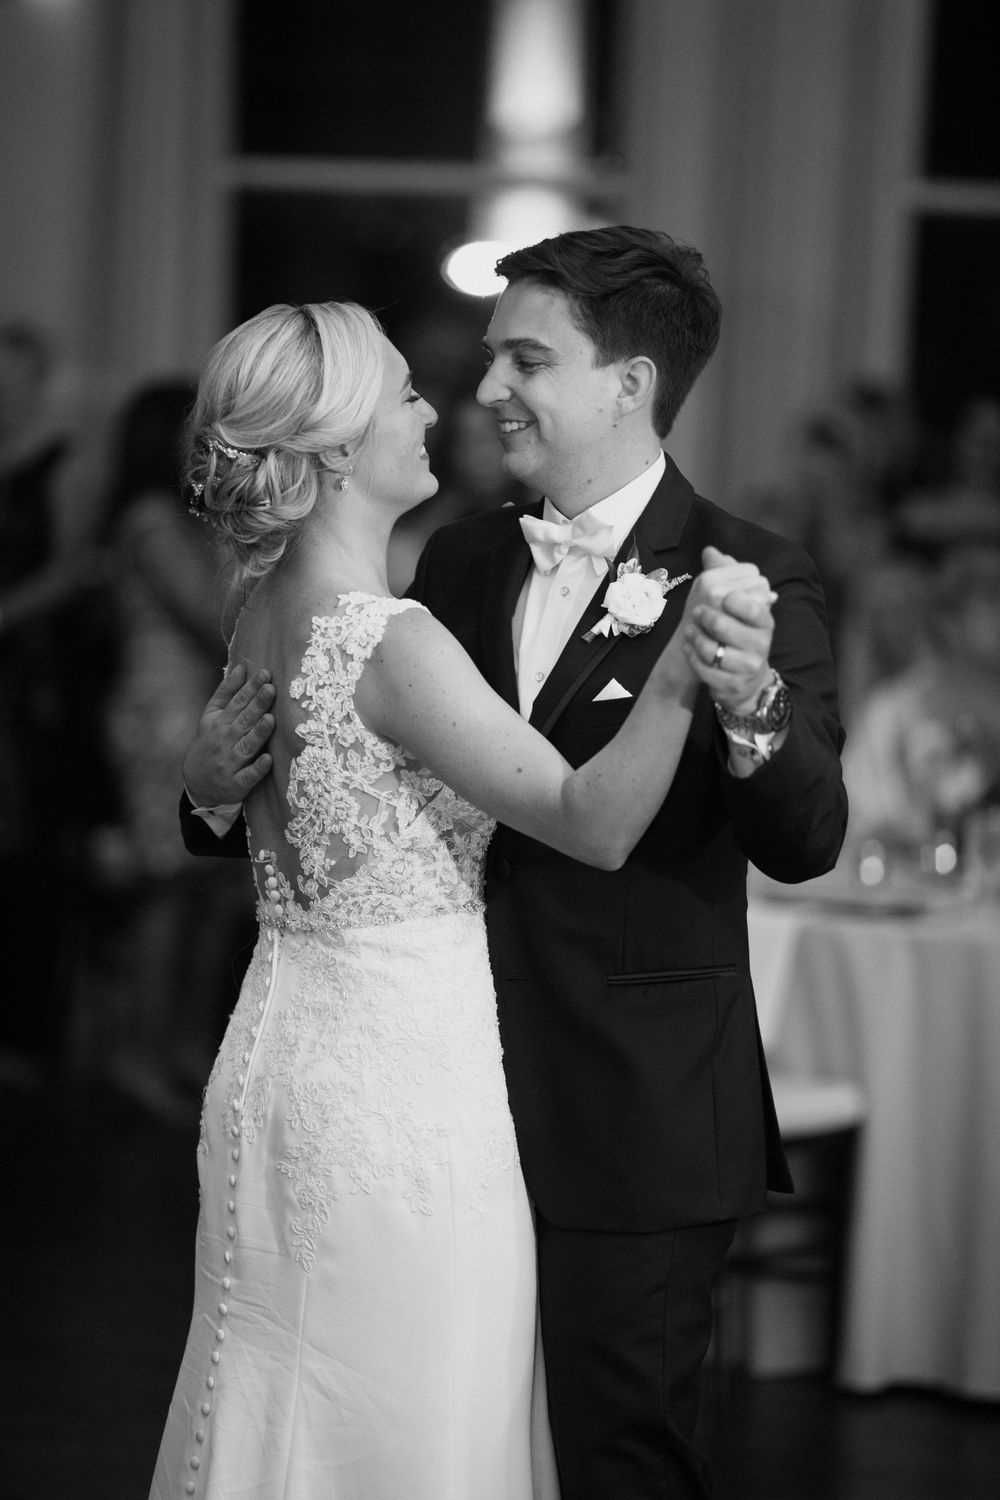 Bride and groom sharing a first dance at a traditional ballroom wedding.